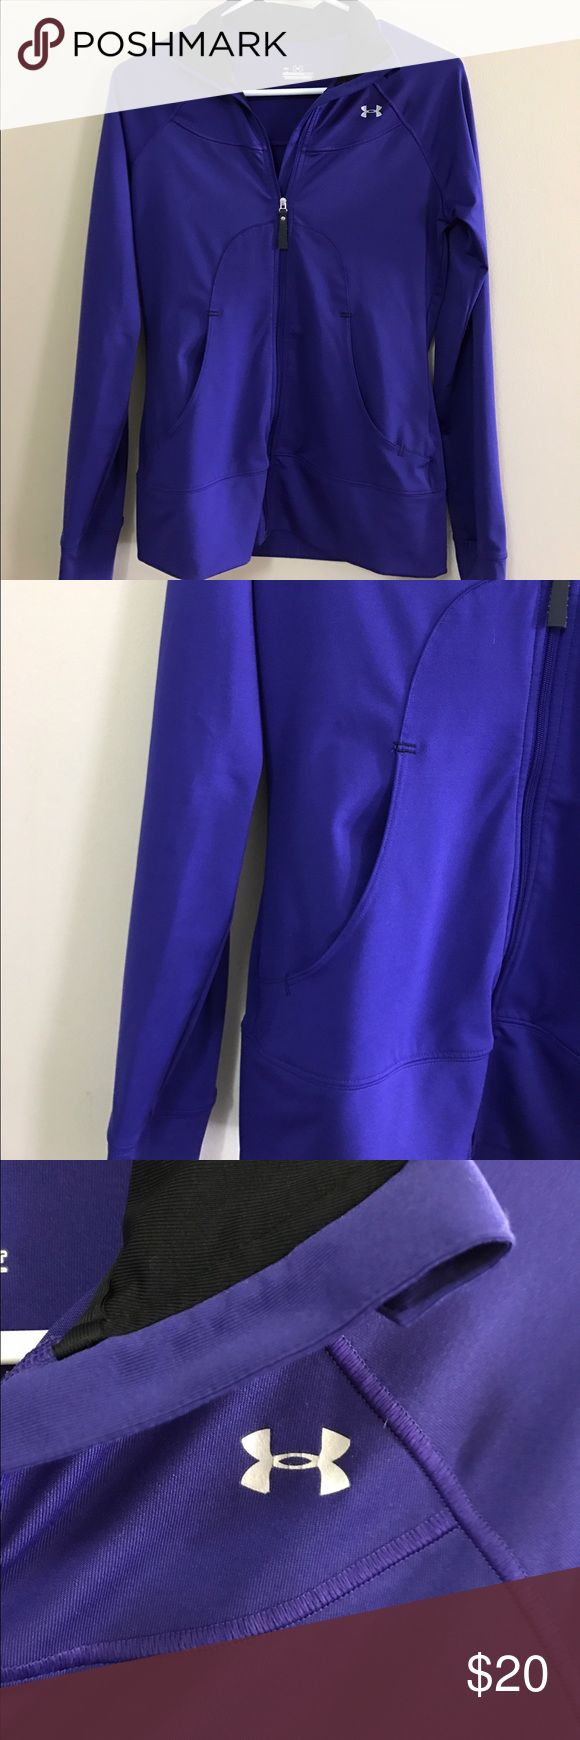 royal blue under armour jacket